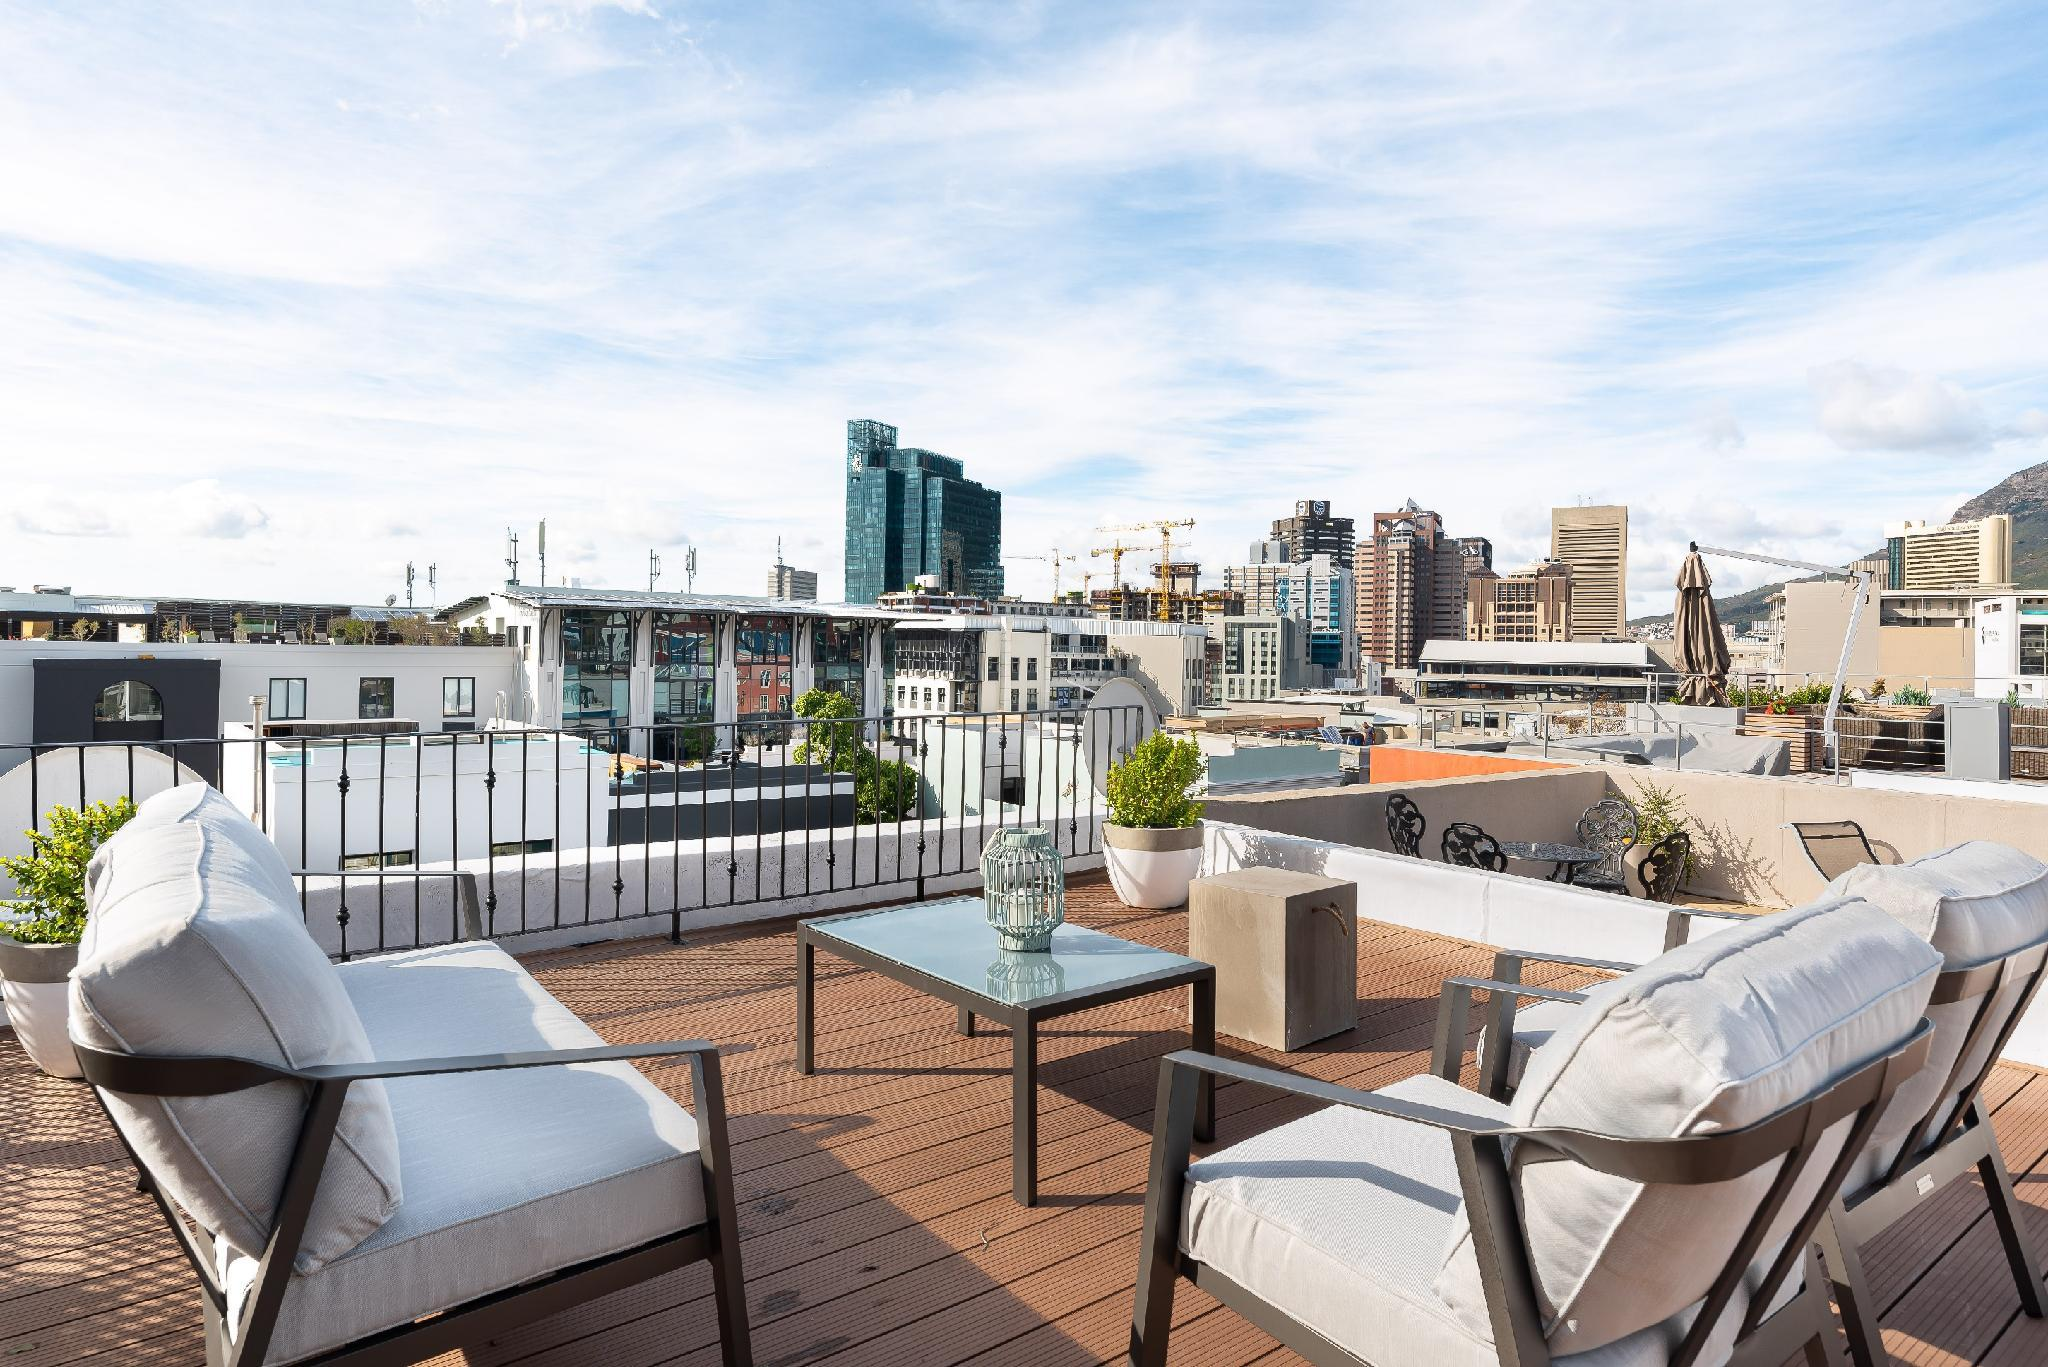 Modern 3 BR With Amazing Views From Rooftop Deck